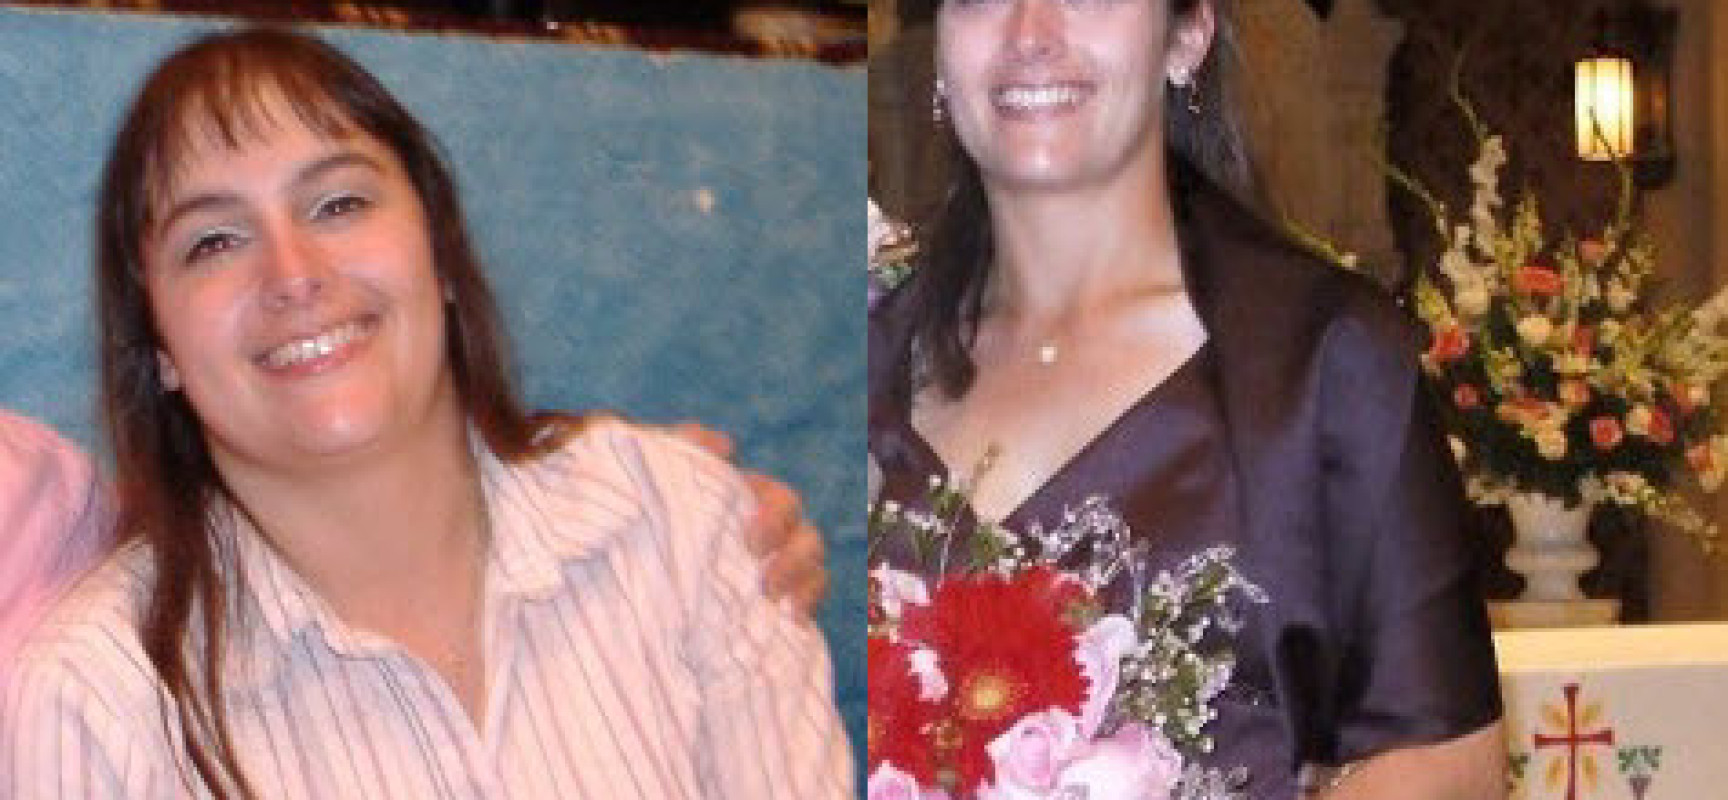 Courtney Lost 35 Pounds Without Starving Her Sweet Tooth